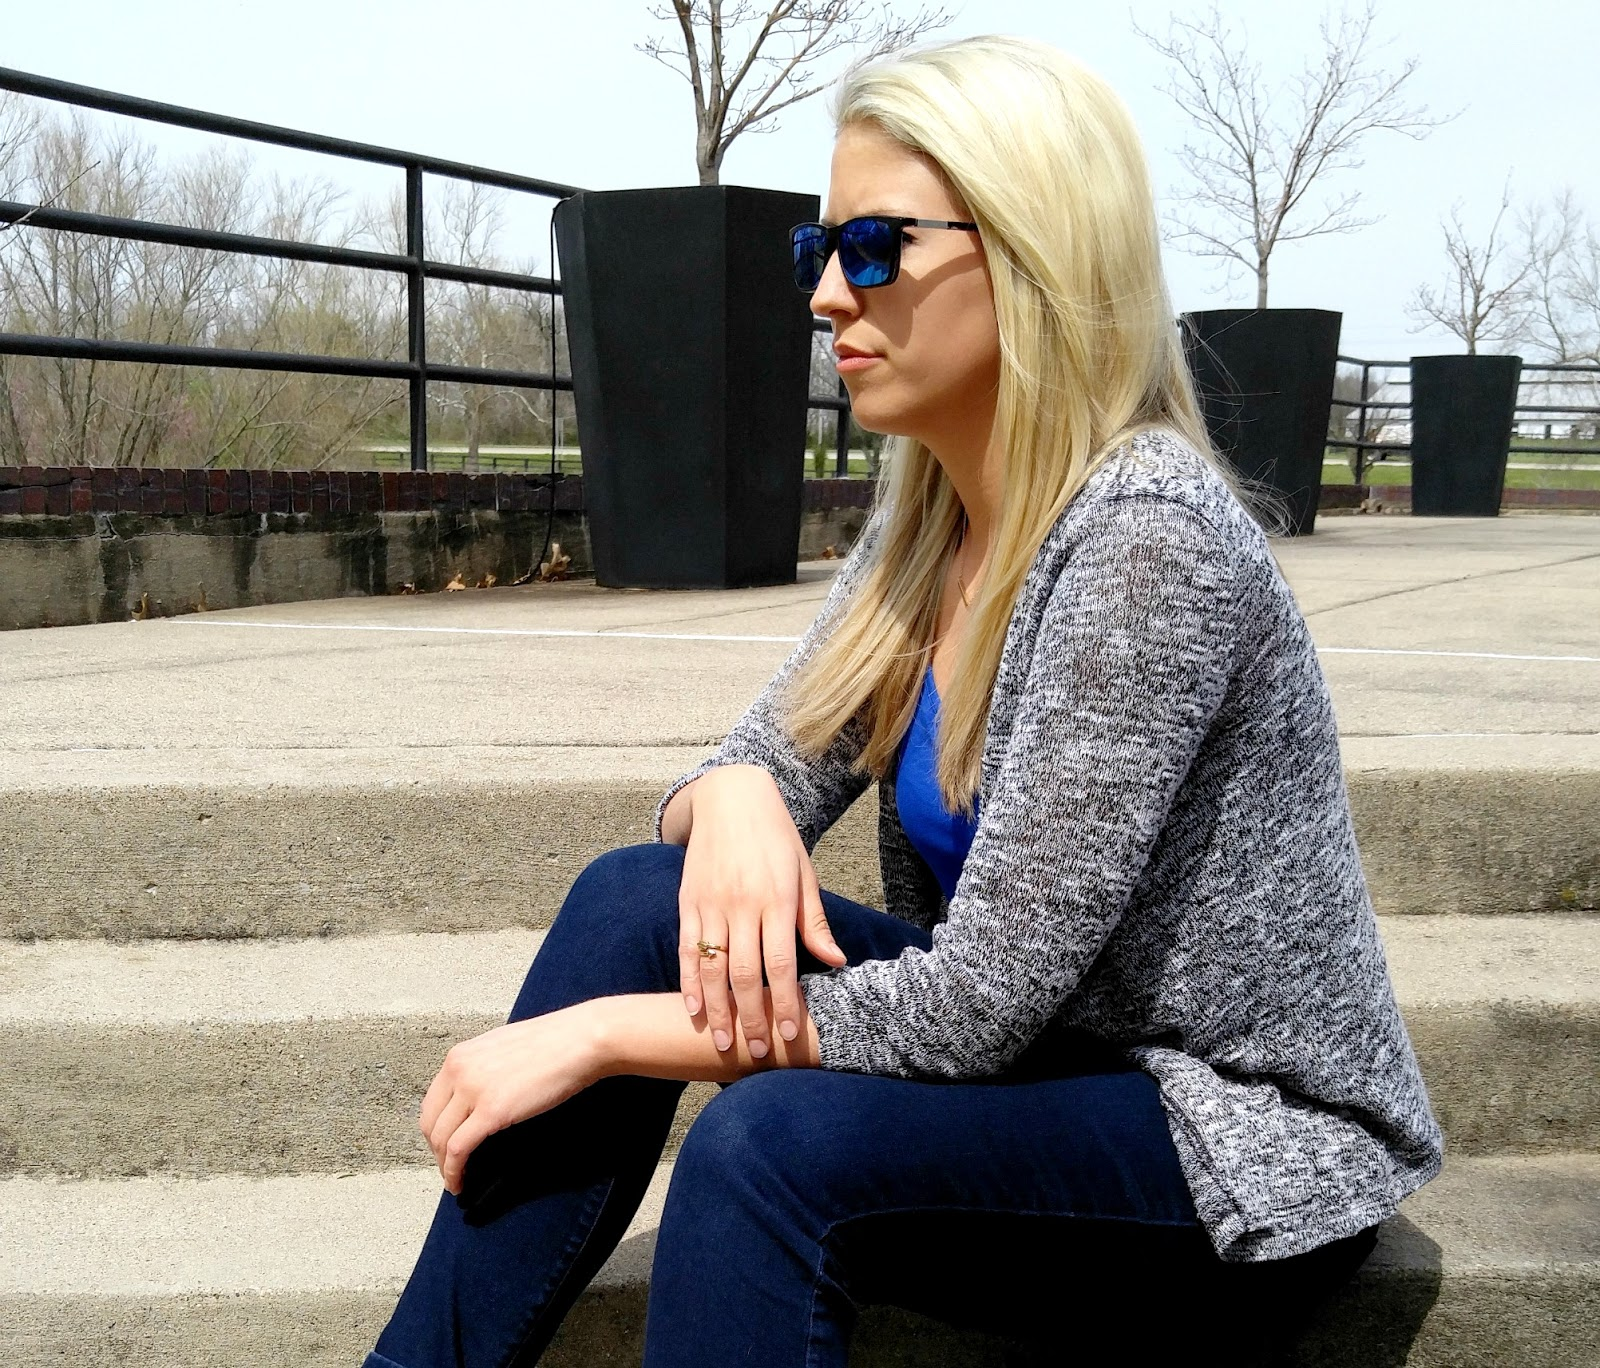 Reno Rectangle clip-on - Black Tortoise (Blue Mirror-coating)